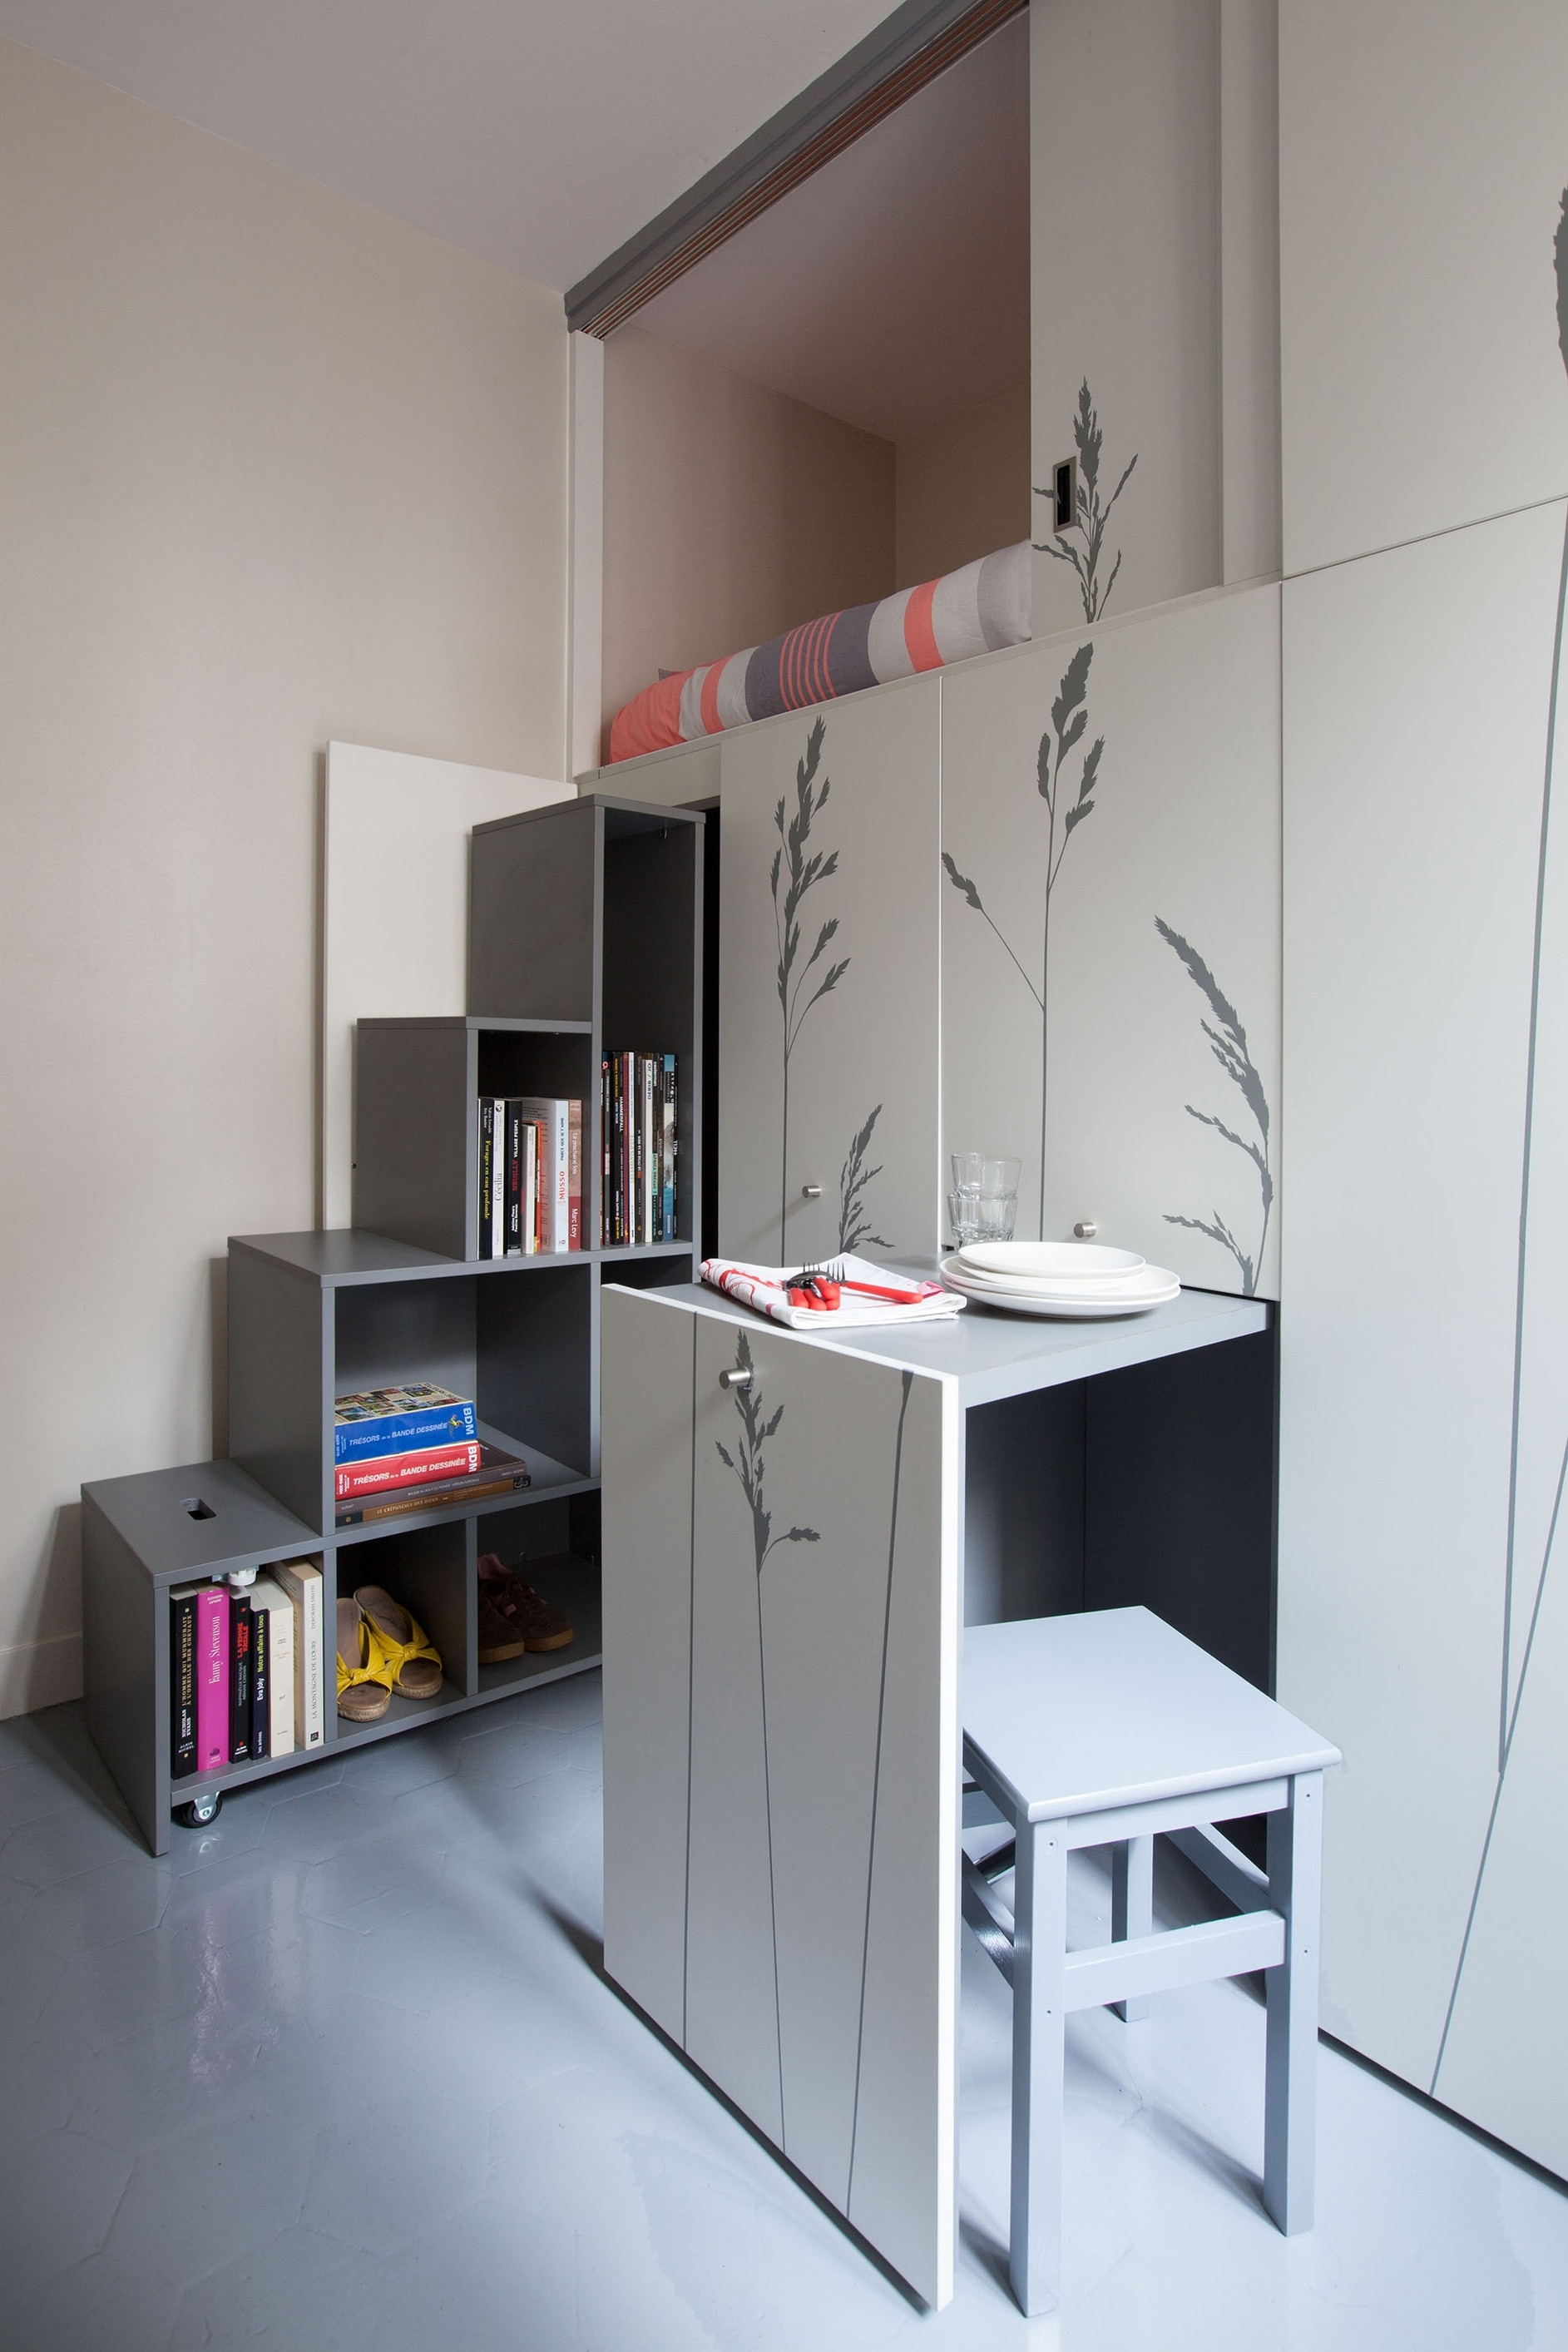 Tiny apartment in paris by kitoko studio karmatrendz for 100 sq ft room ideas